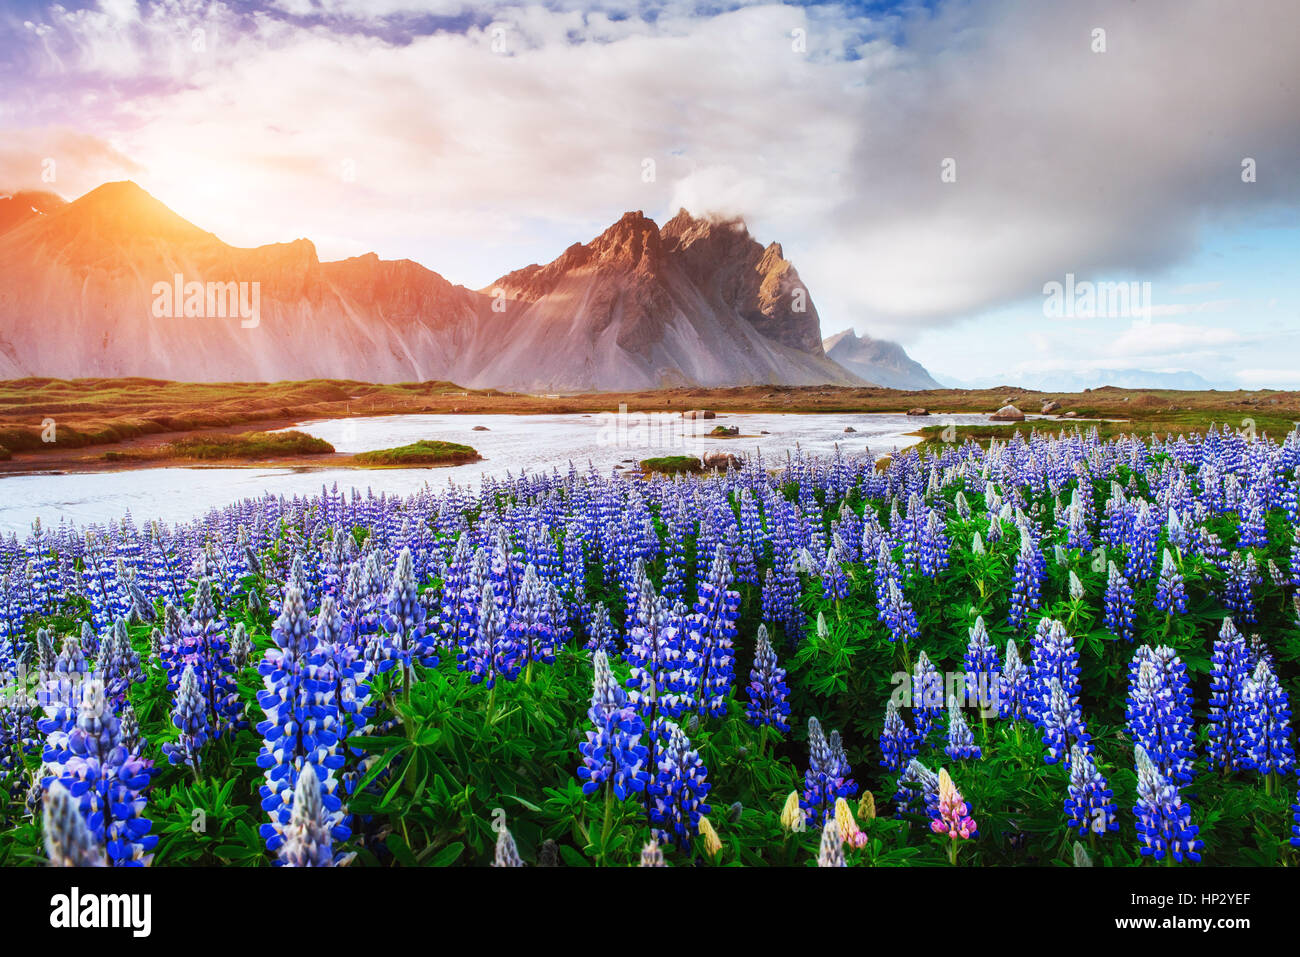 The picturesque landscapes forests and mountains of Iceland Stock Photo